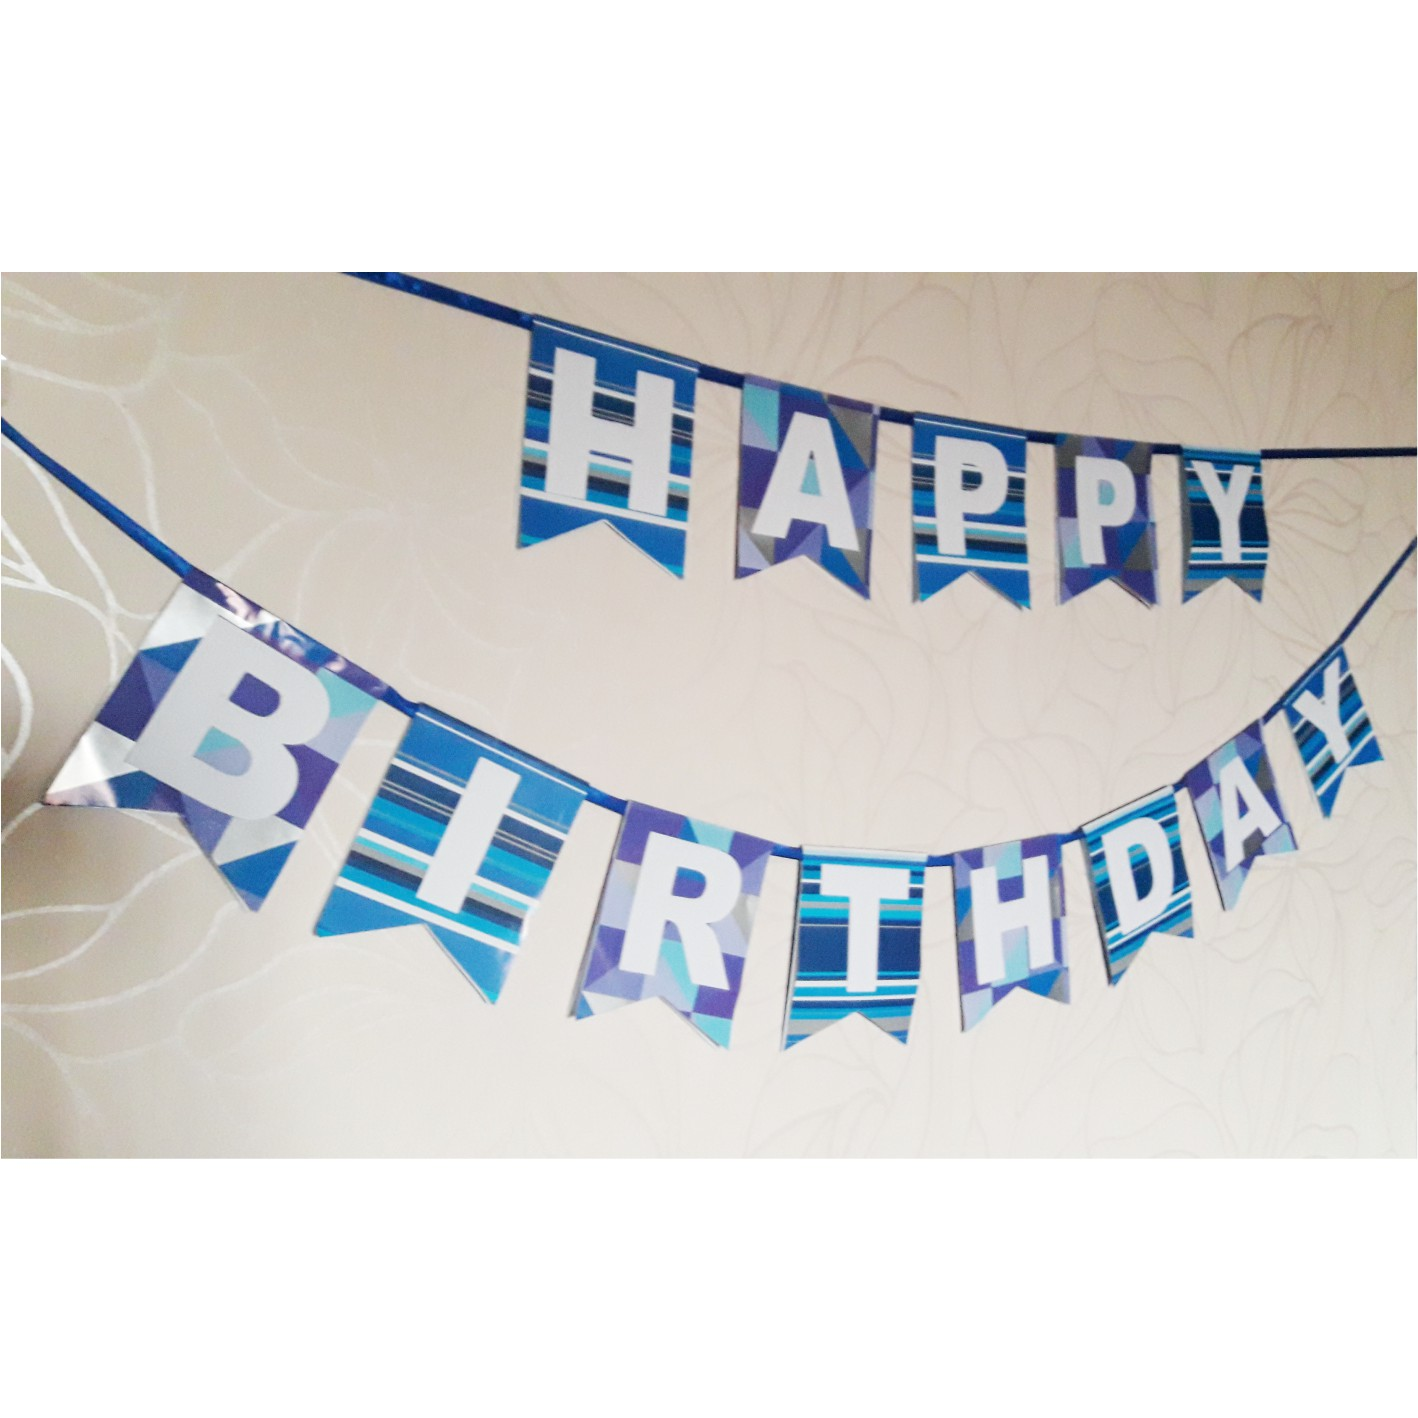 happy birthday website design ; happy-birthday-banner-1